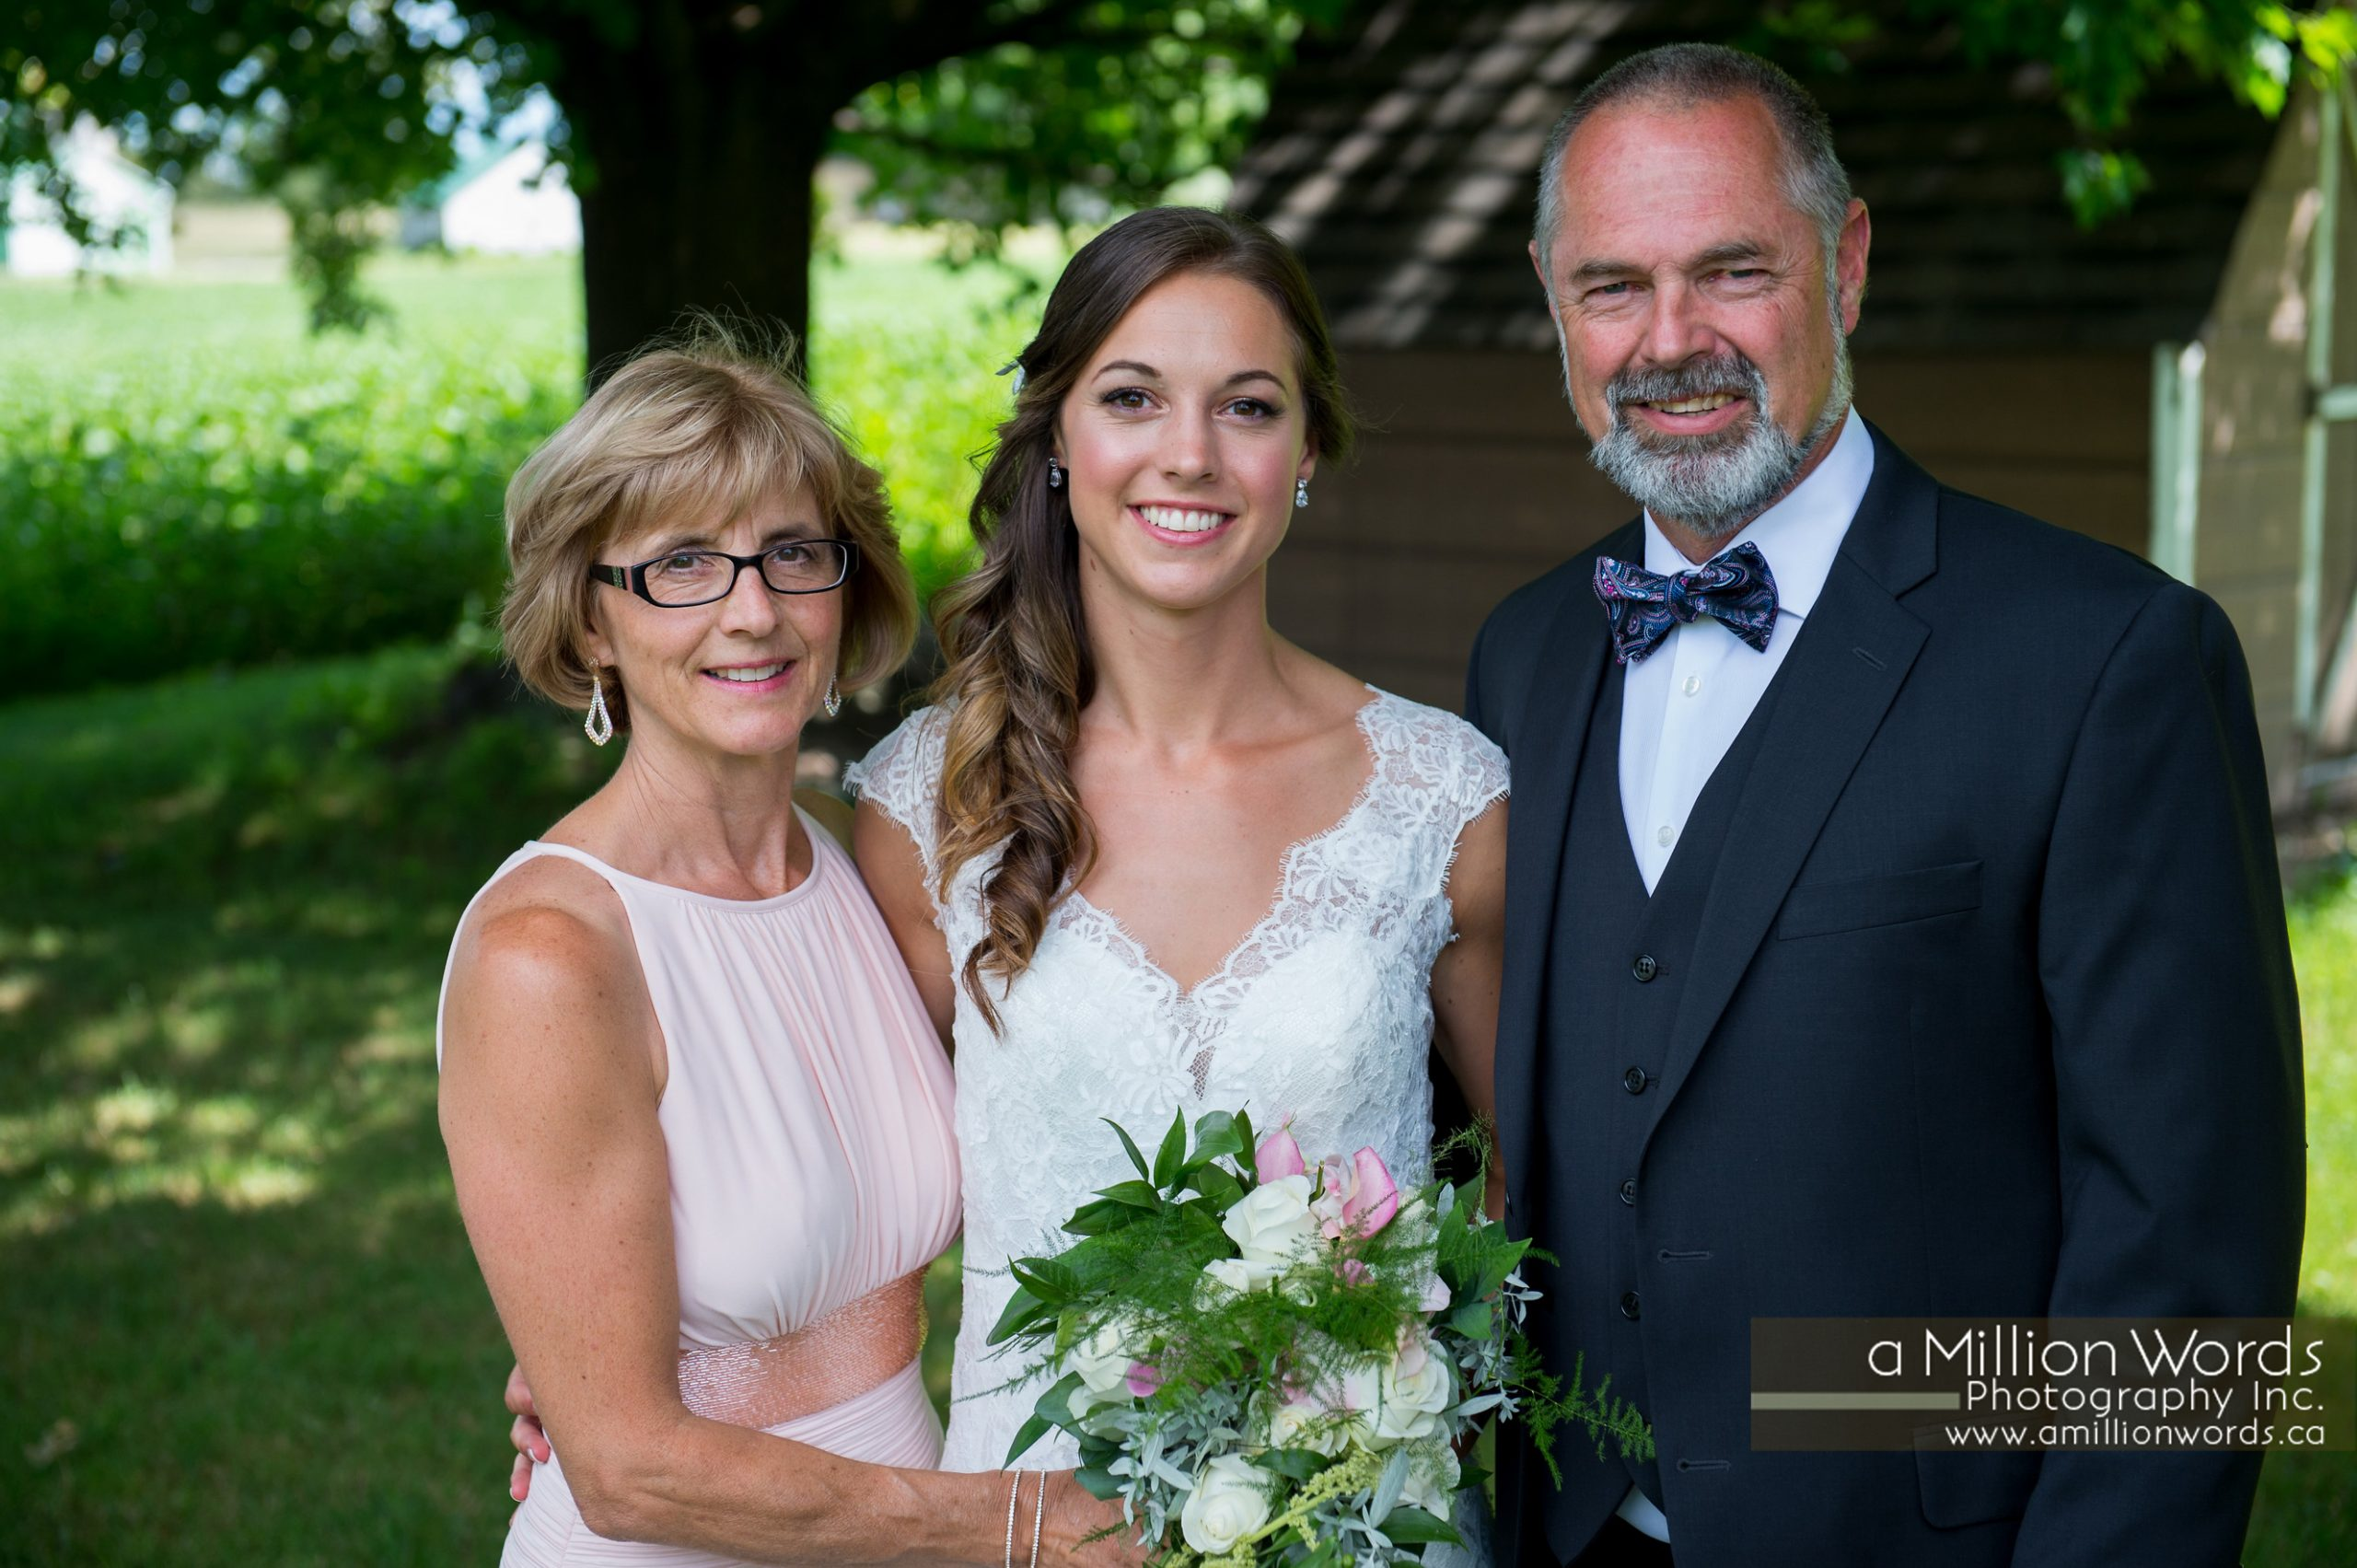 kw_wedding_photography20